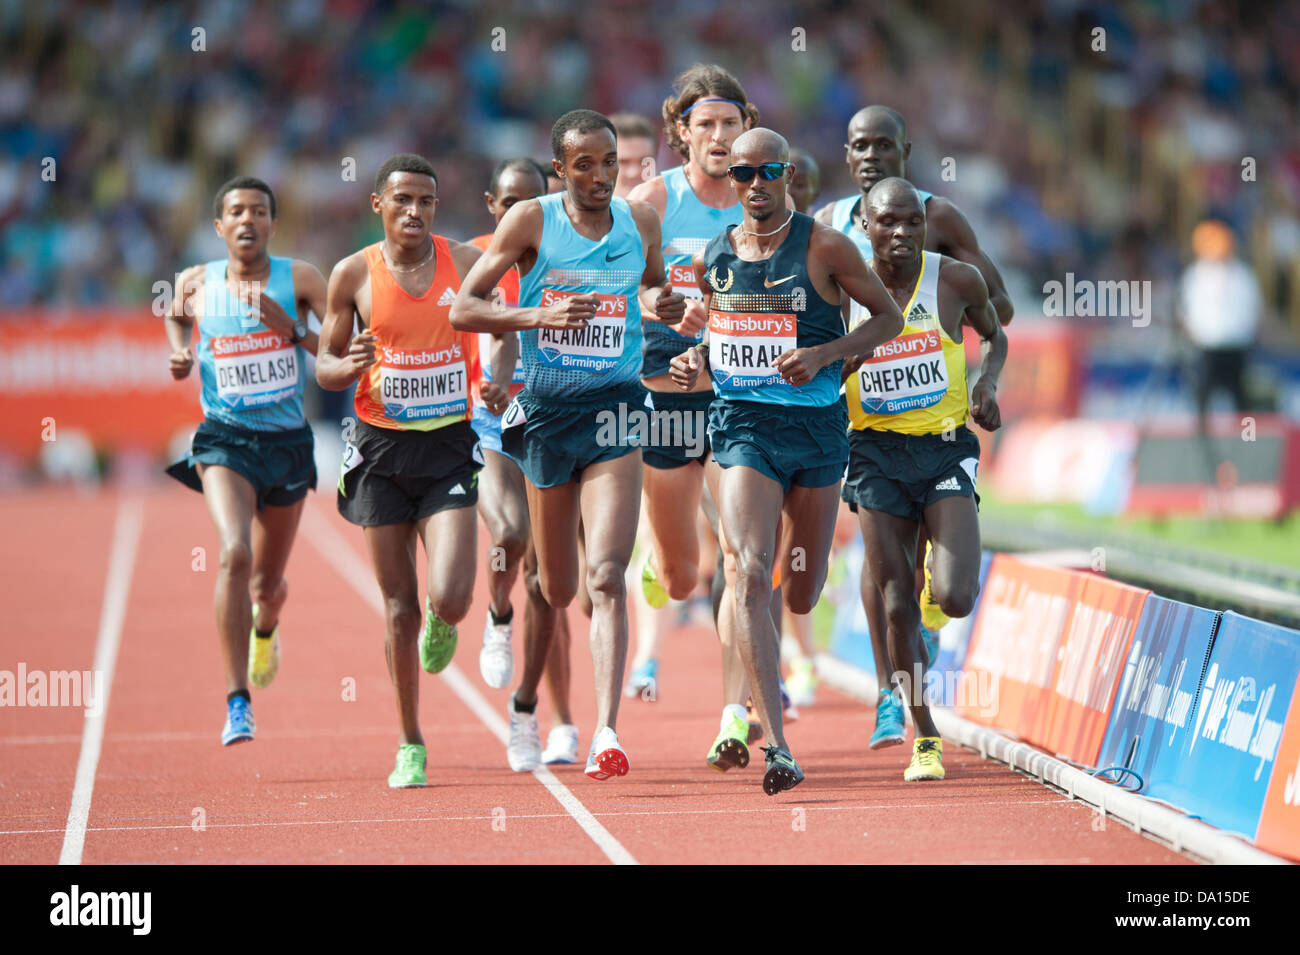 Birmingham, UK. 30th June 2013. Mo Farah of Great Britain finishes 1st in the men's 5000m event at the 2013 - Stock Image